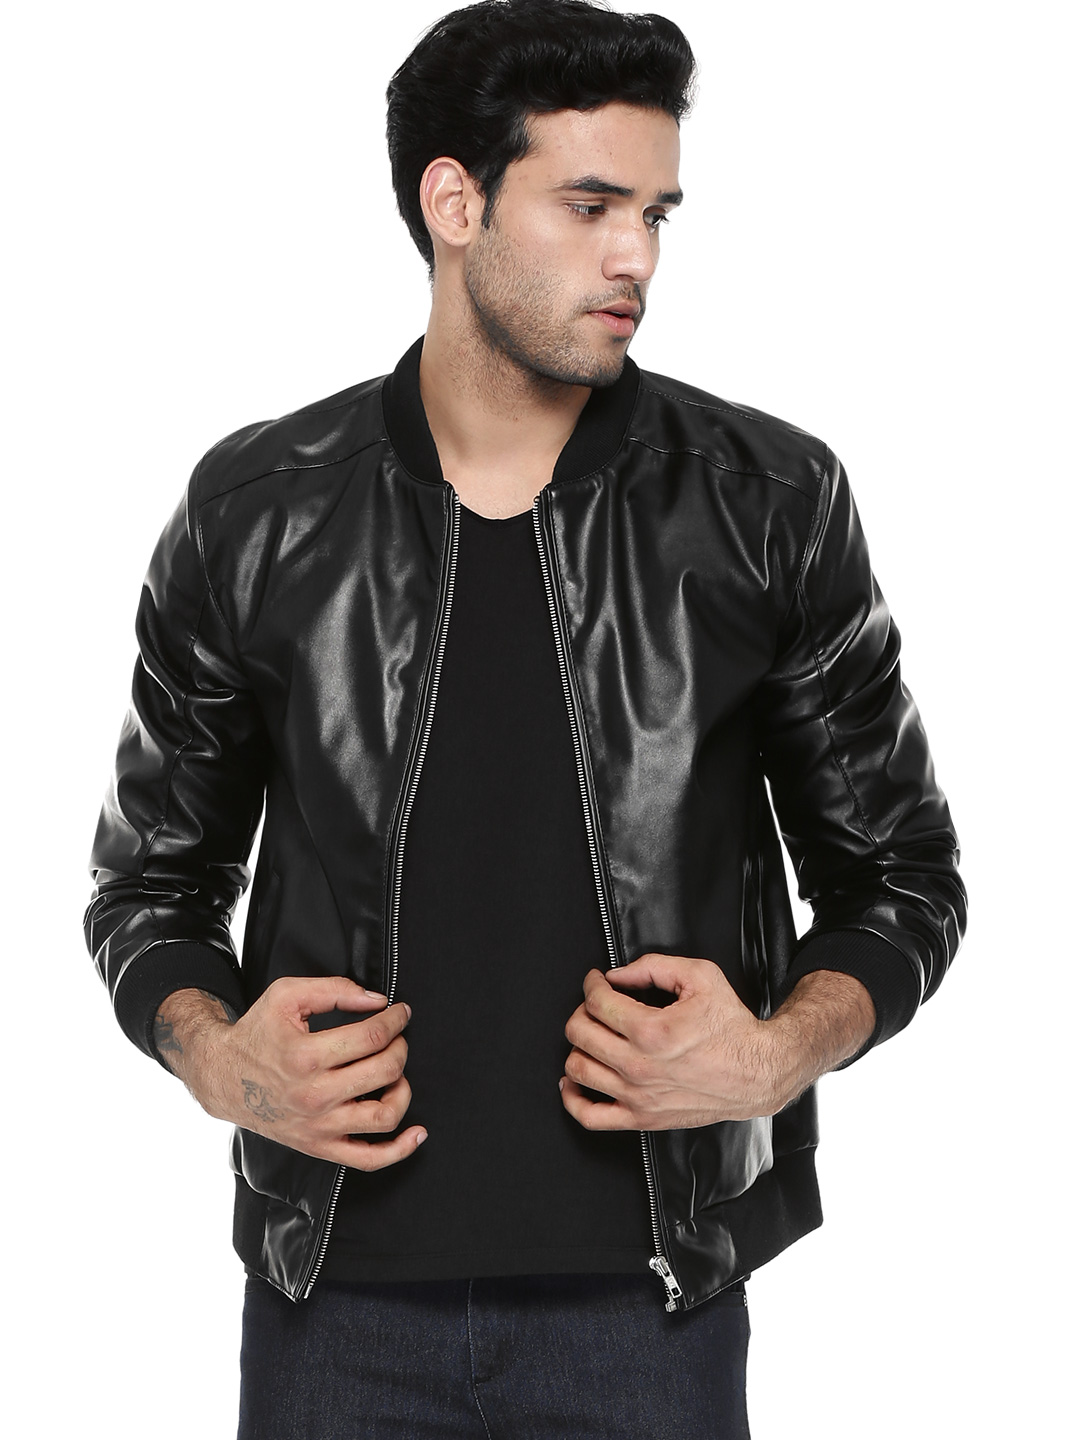 Berfolk Black Panelled Bomber Jacket With Elbow Patch 1